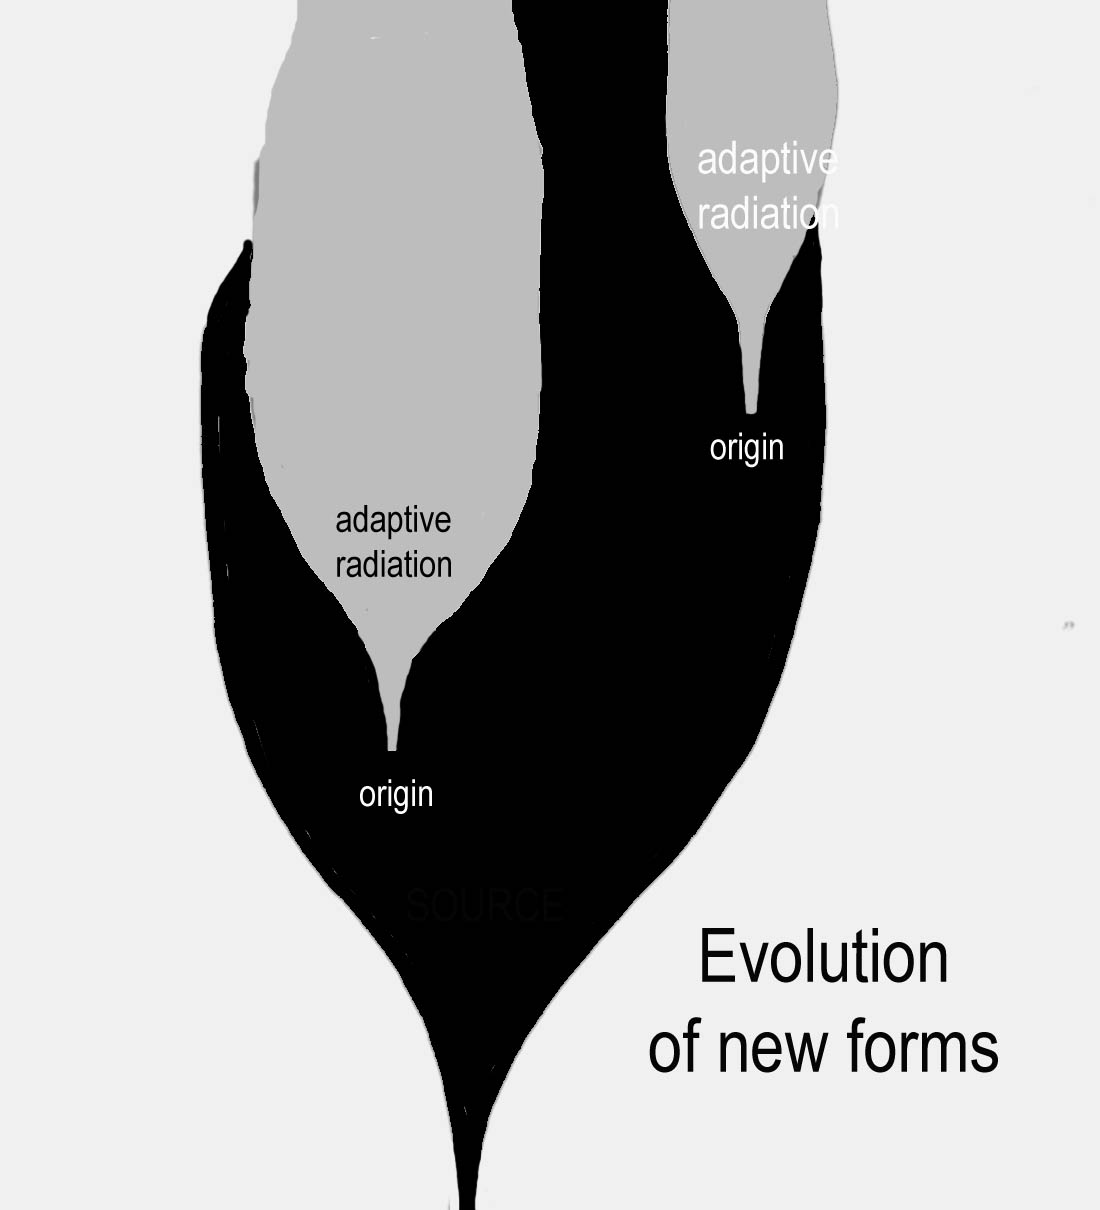 Adaptive Radiation Diagram - Evolution of New Forms